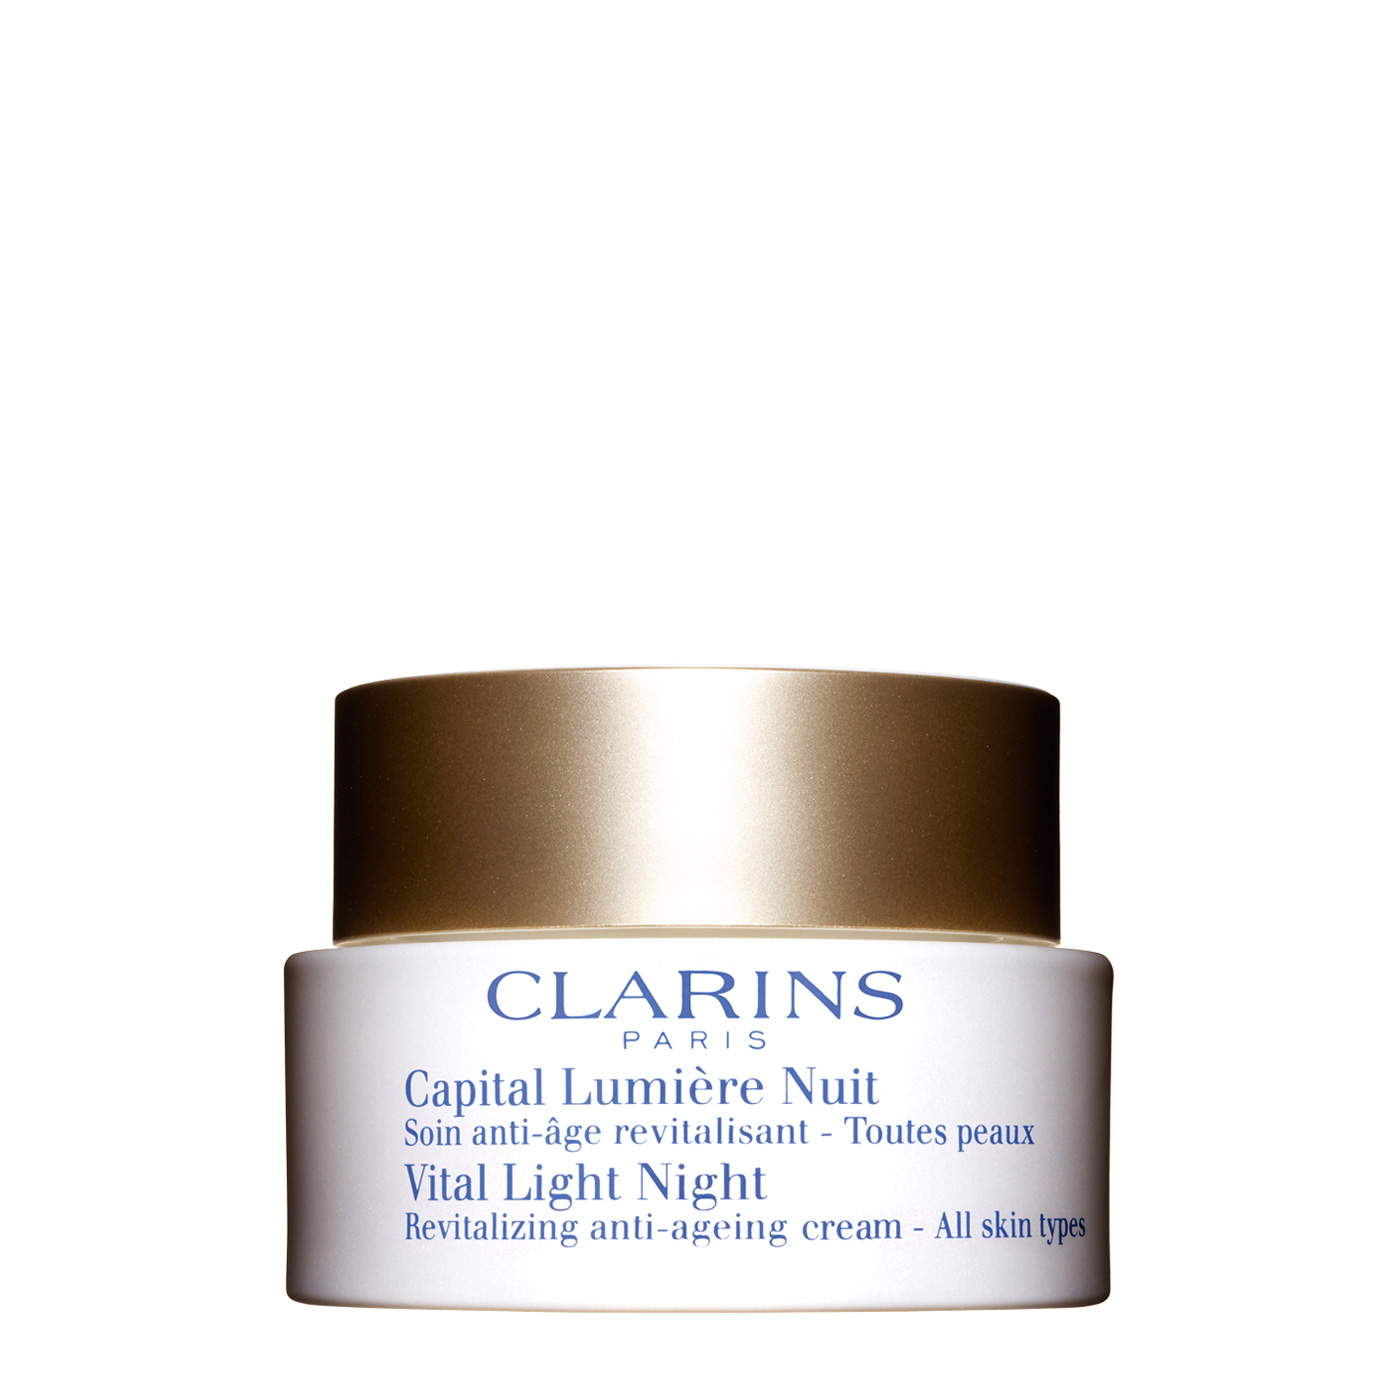 "Night Revitalizing Cream All Skin Types - Only Clarins science harnesses the power of two rare pioneer plants that work while you sleep — bathing skin in age-defying luminosity. Cochlearia Officinalis and Waltheria extracts* reorganize weak collagen into a resilient cushion that beams light up to the skin's surface, restoring the deep luminosity of young-looking skin. Palmitoyl Glycine encourages optimal skin nutrition for a fresh, ""lit from within"" glow by morning. * International…"